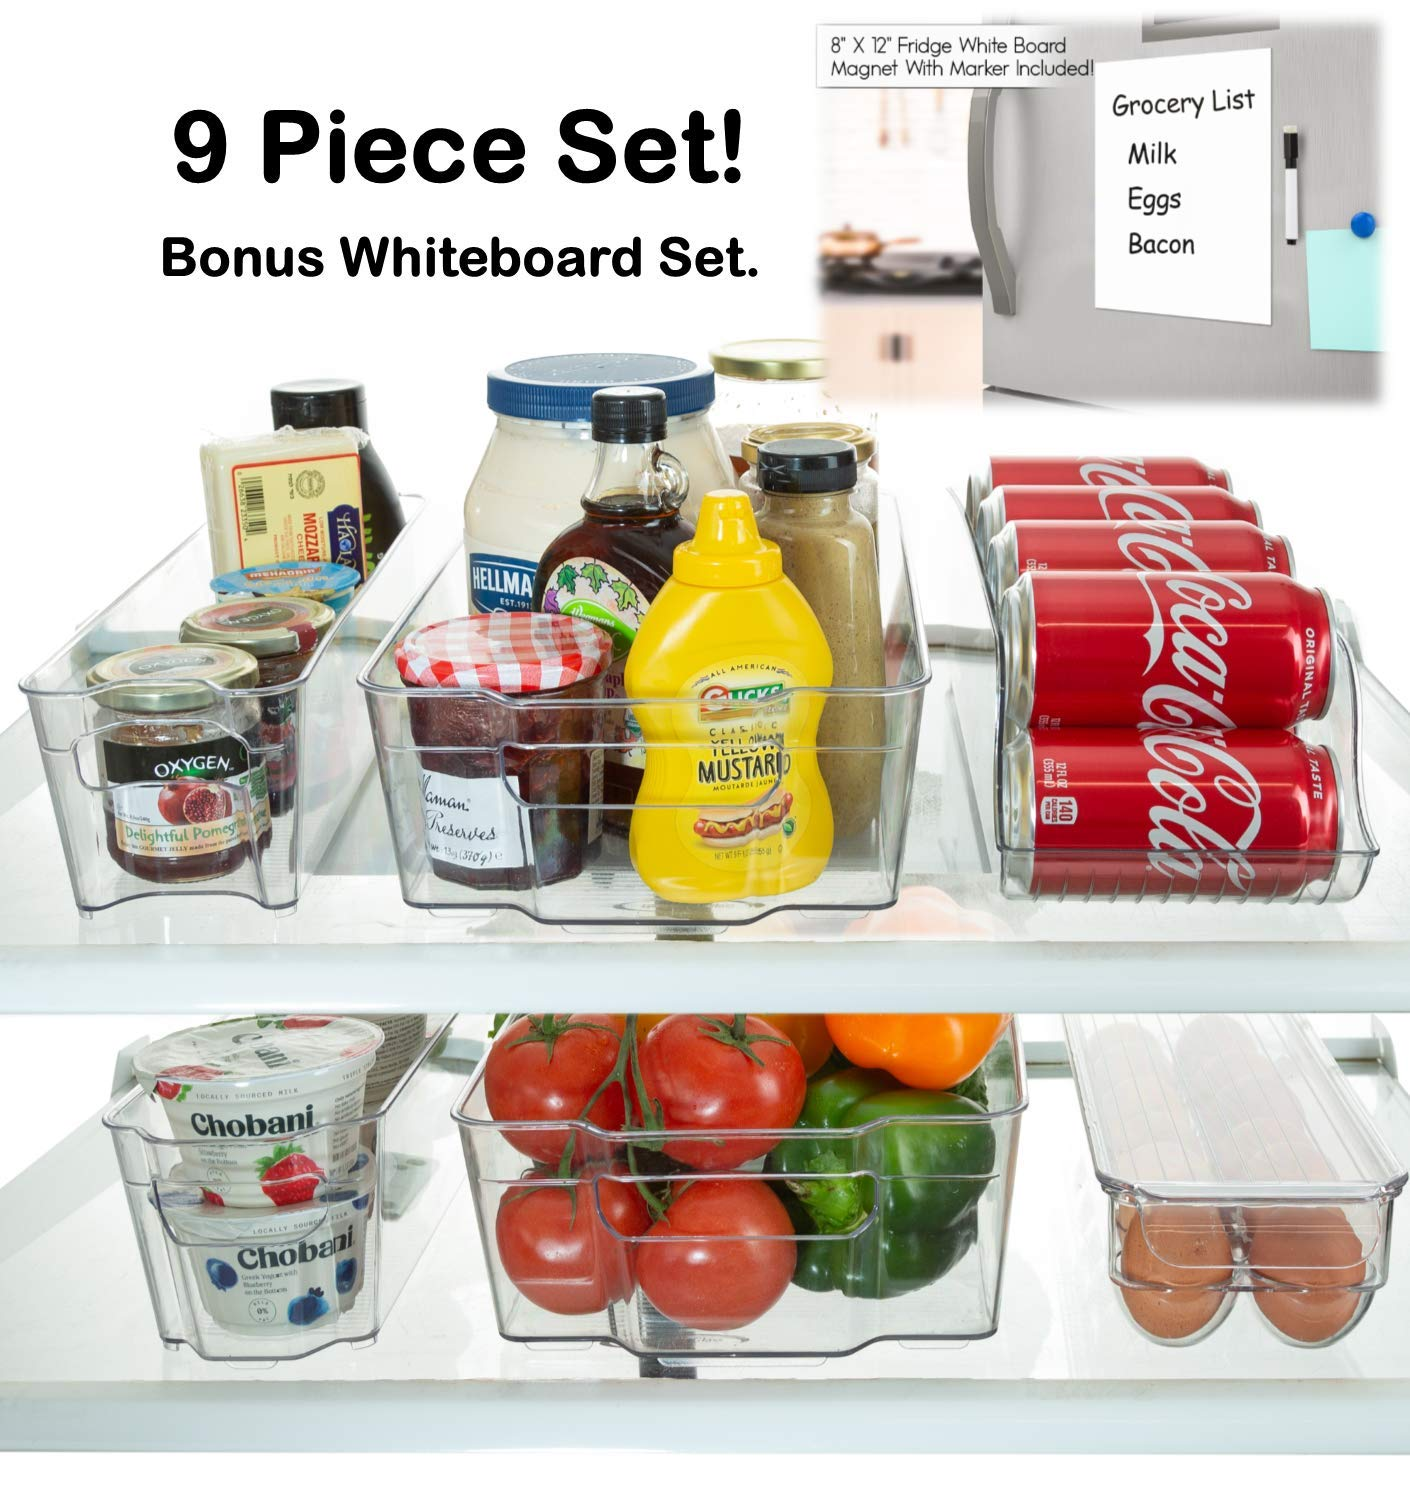 StorageMaid Stackable Storage Fridge Bins - Refrigerator Organizer Bins for Fridge, Freezer, Pantry And Kitchen. Includes Bonus Magnetic Dry-Erase Whiteboard & Markers Set (9-Piece Set)